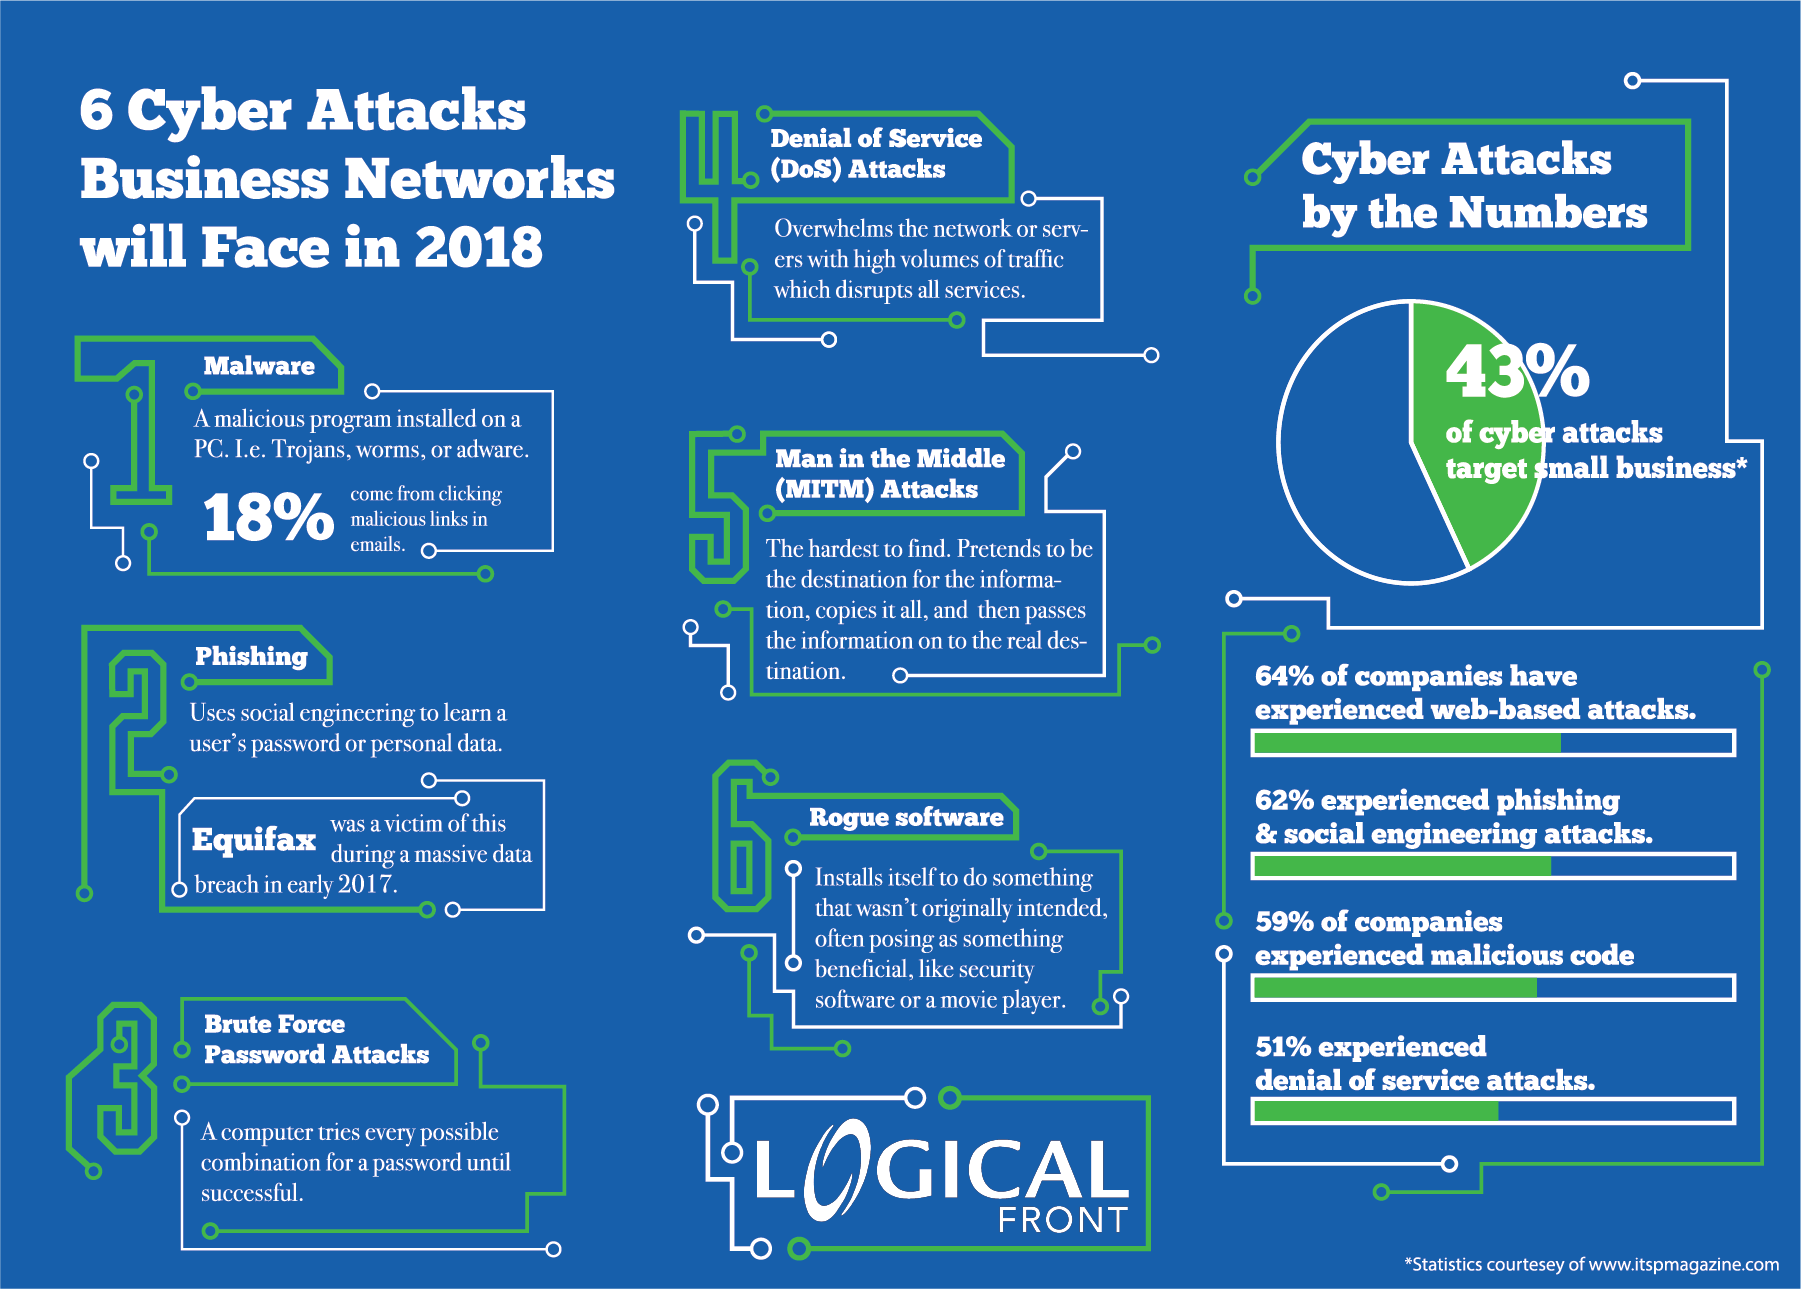 6 Security Threats To Look Out For In 2018 Logical Front